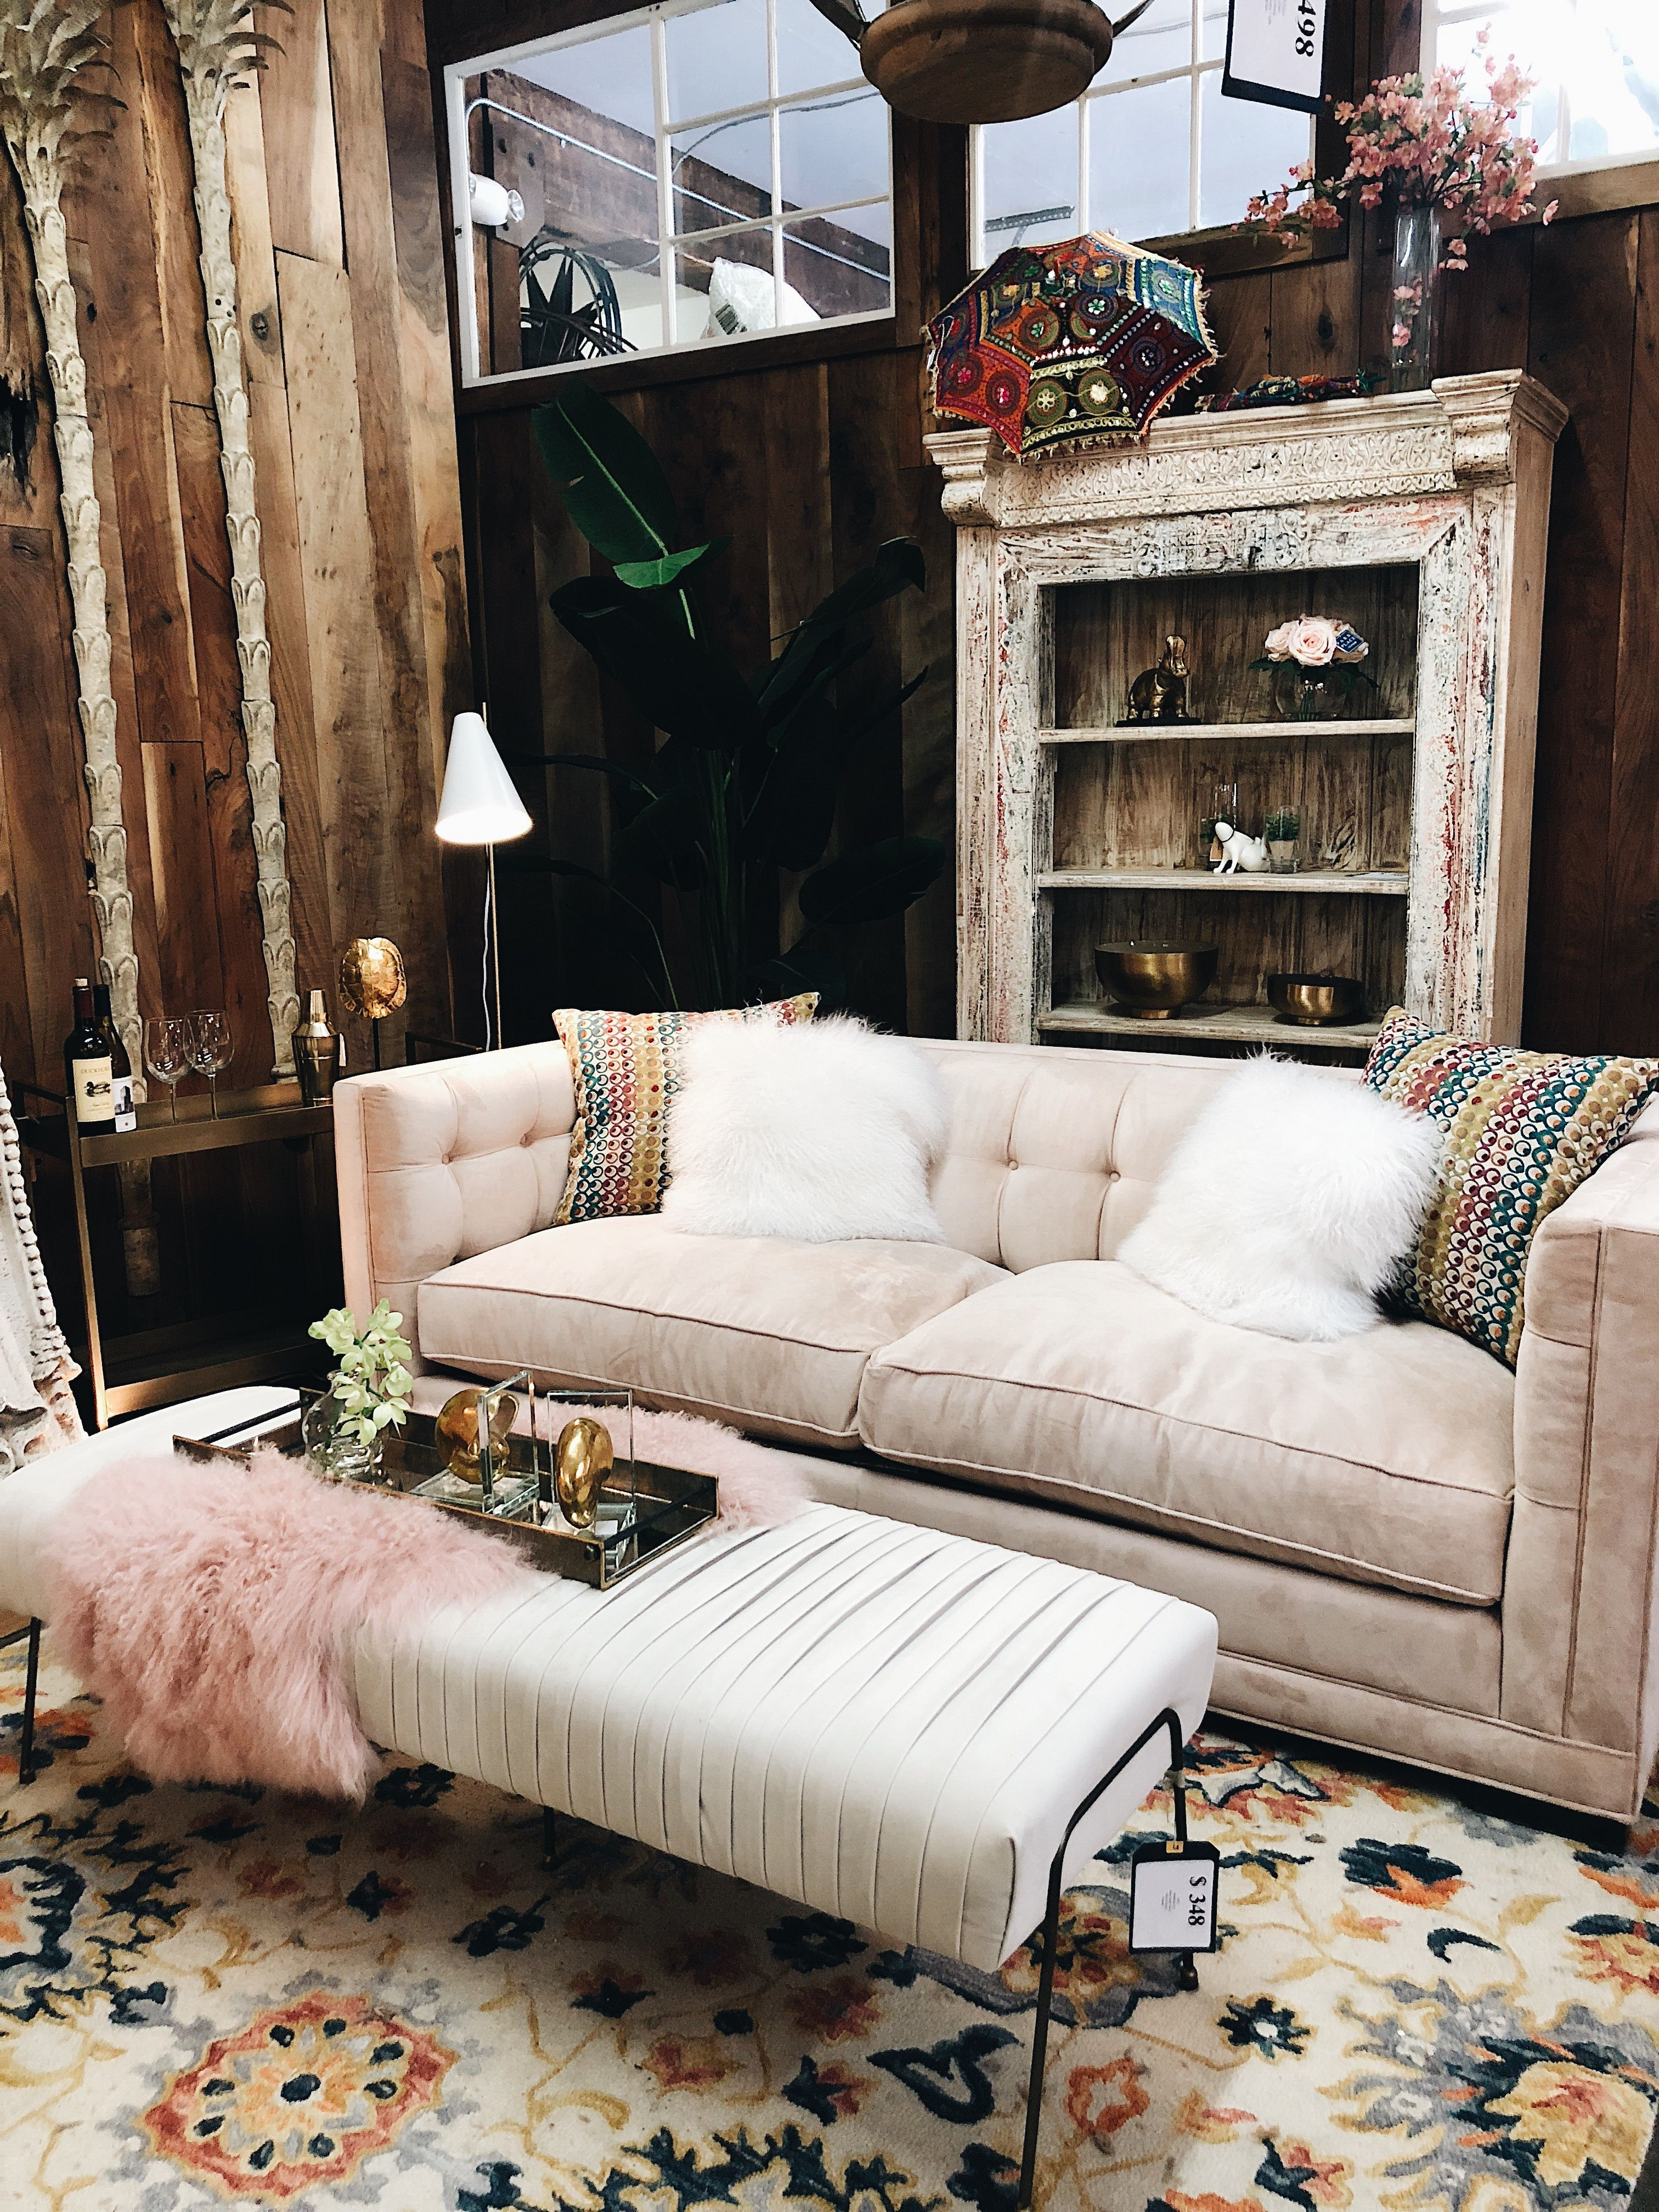 A closer look at one of the vintage inspired staging areas at our se portland location